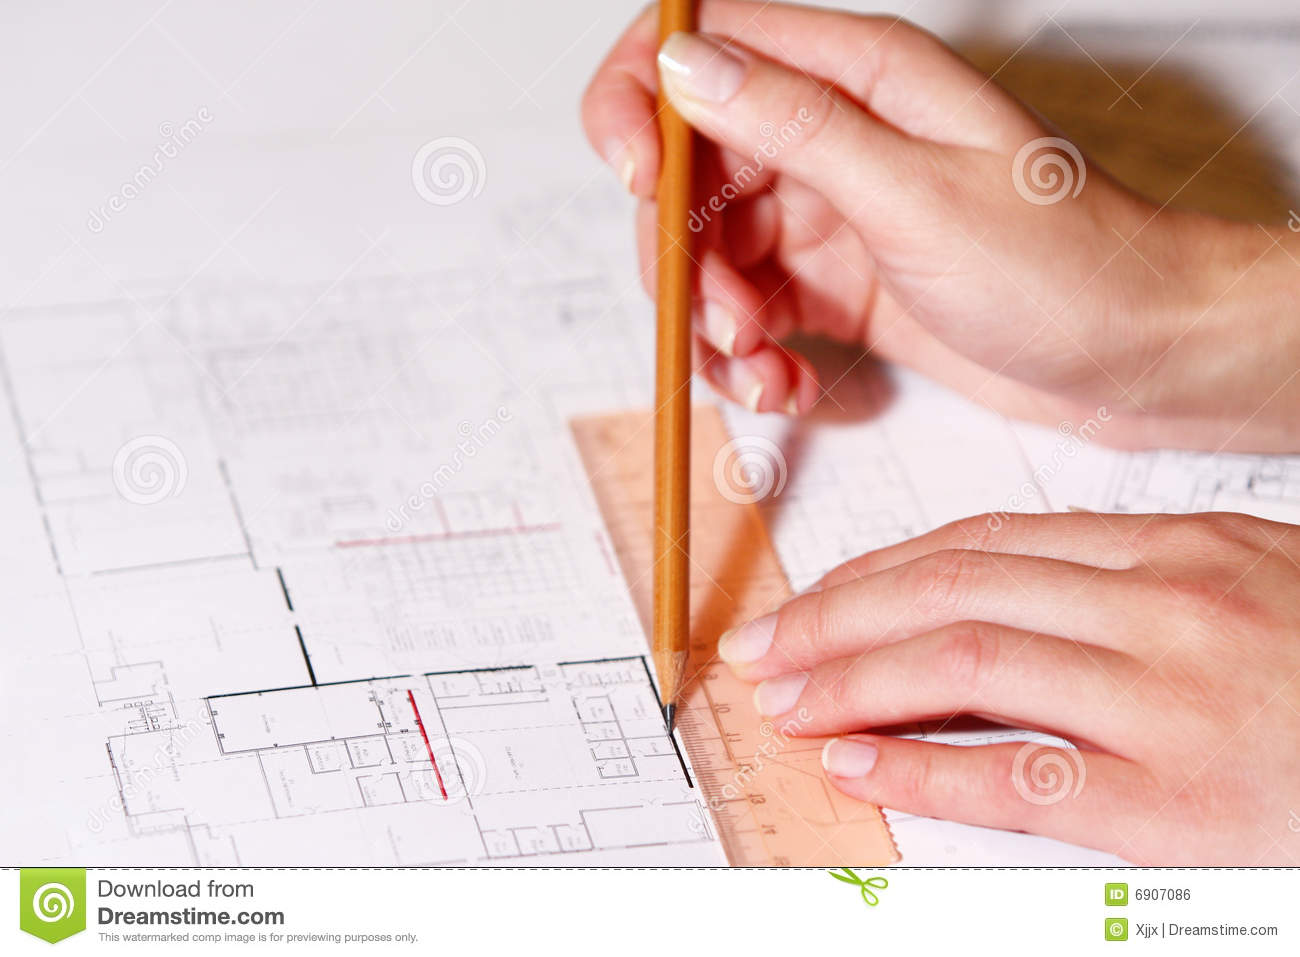 Hand drawing architectural plan with pencil royalty free for How to draw architectural plans by hand